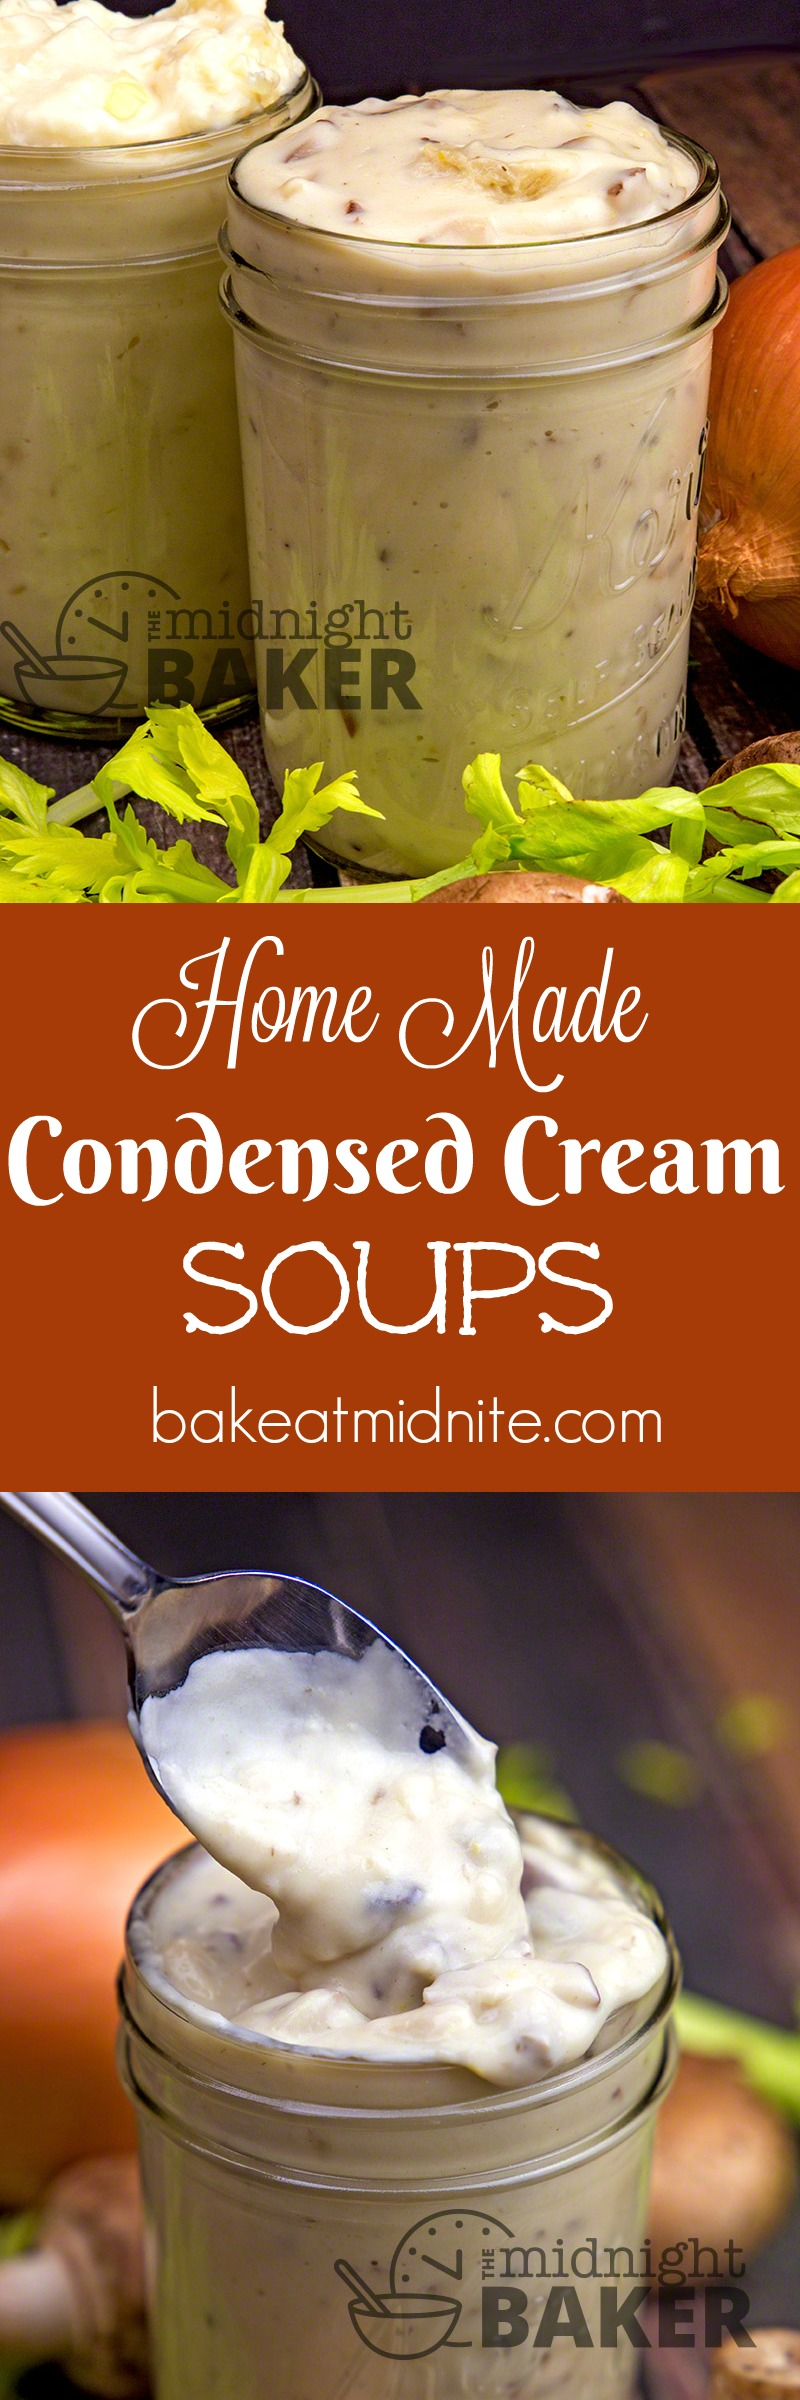 You will never use condensed cream sauce out of the can again once you try these easy and delicious homemade versions.